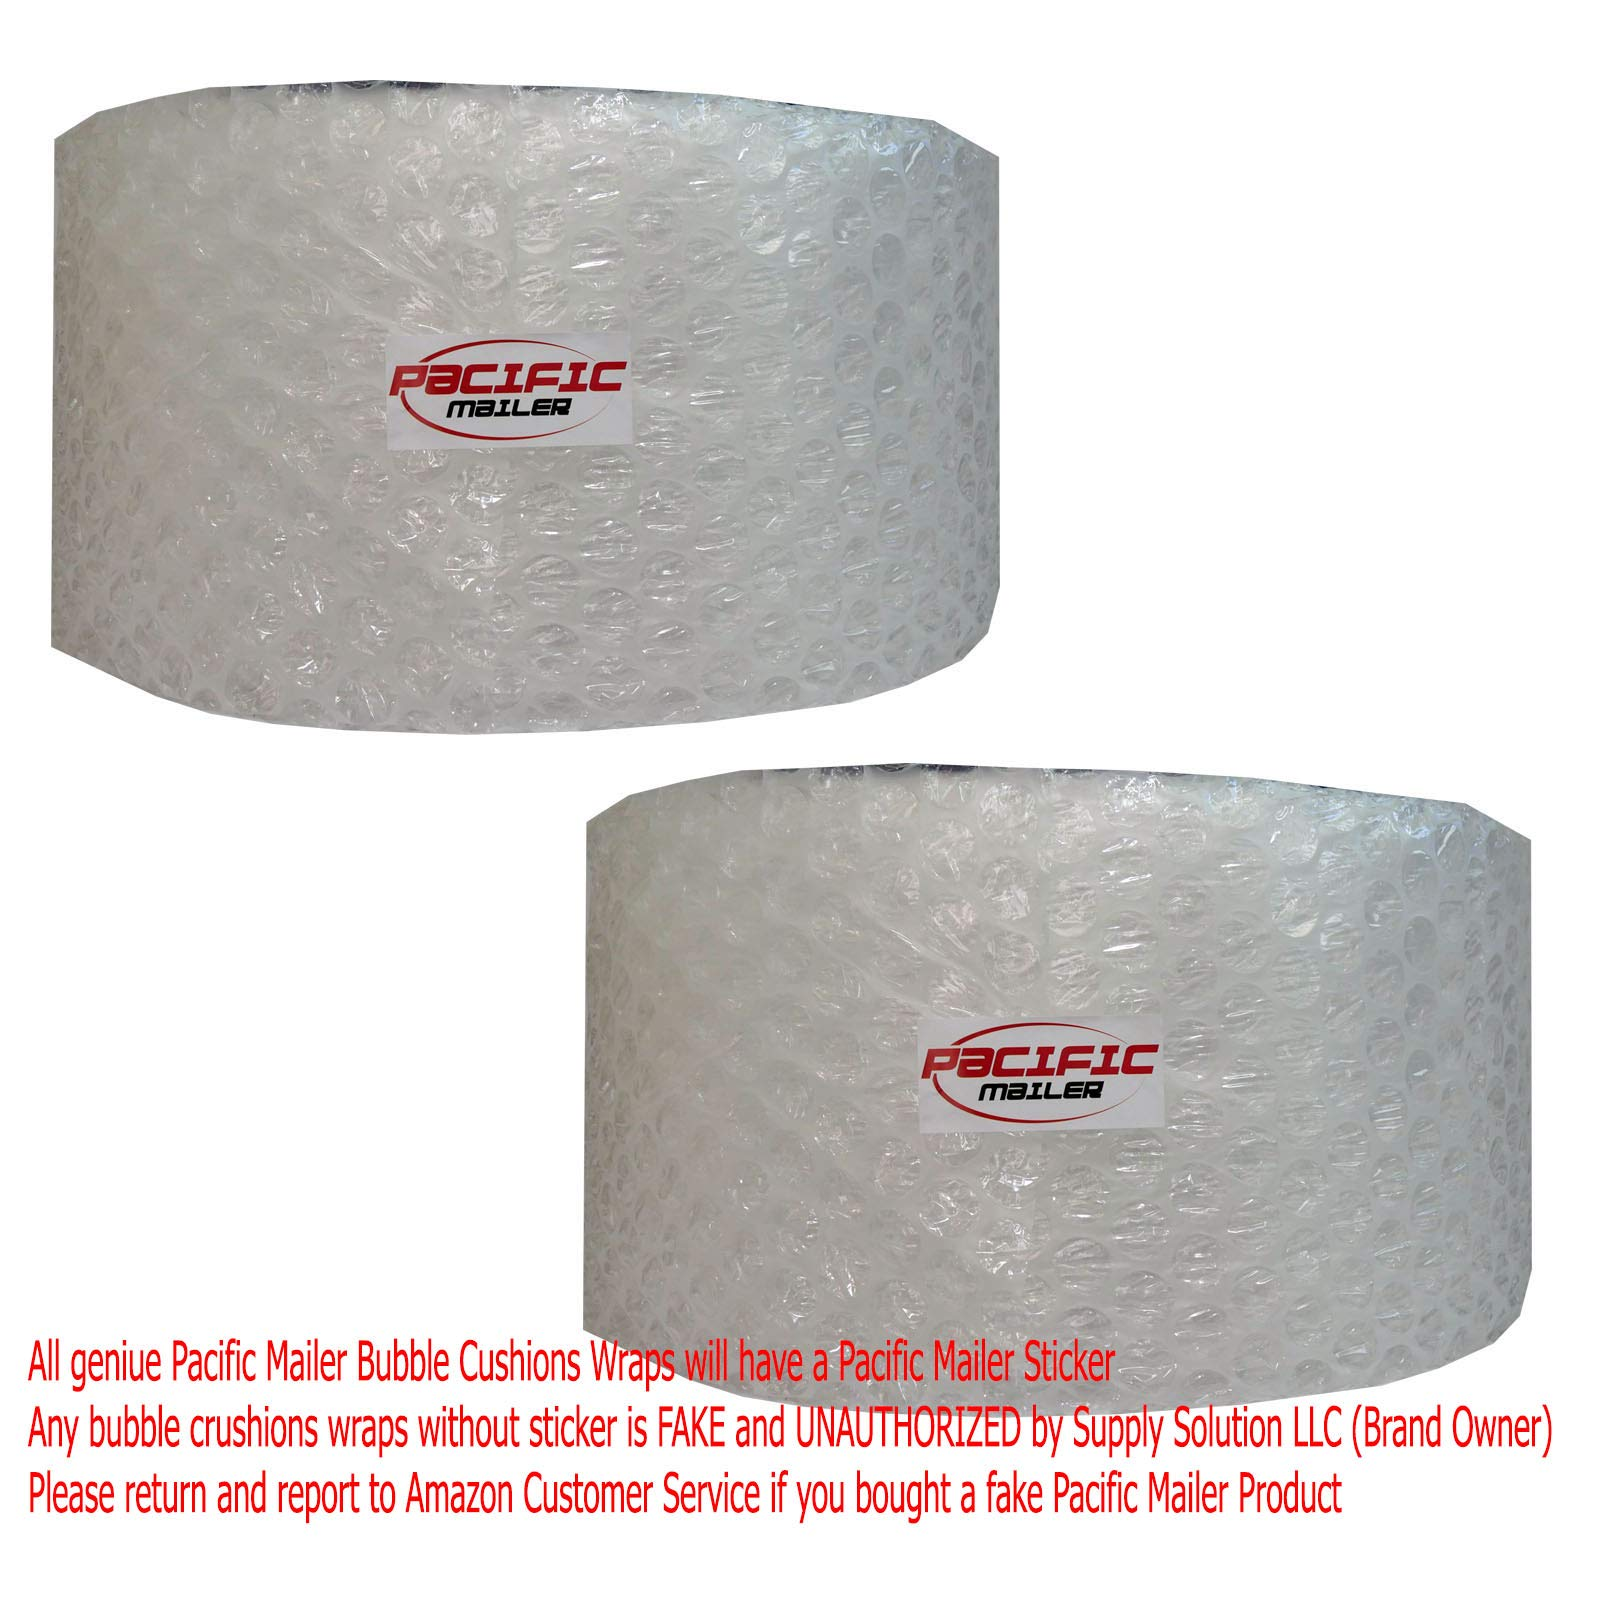 PacificMailer Bubble Cushioning Wrap Roll 12'' x 250' x 1/2'' Large, Perforated Every 12'' for Packaging, Shipping, Mailing by PacificMailer (Image #2)